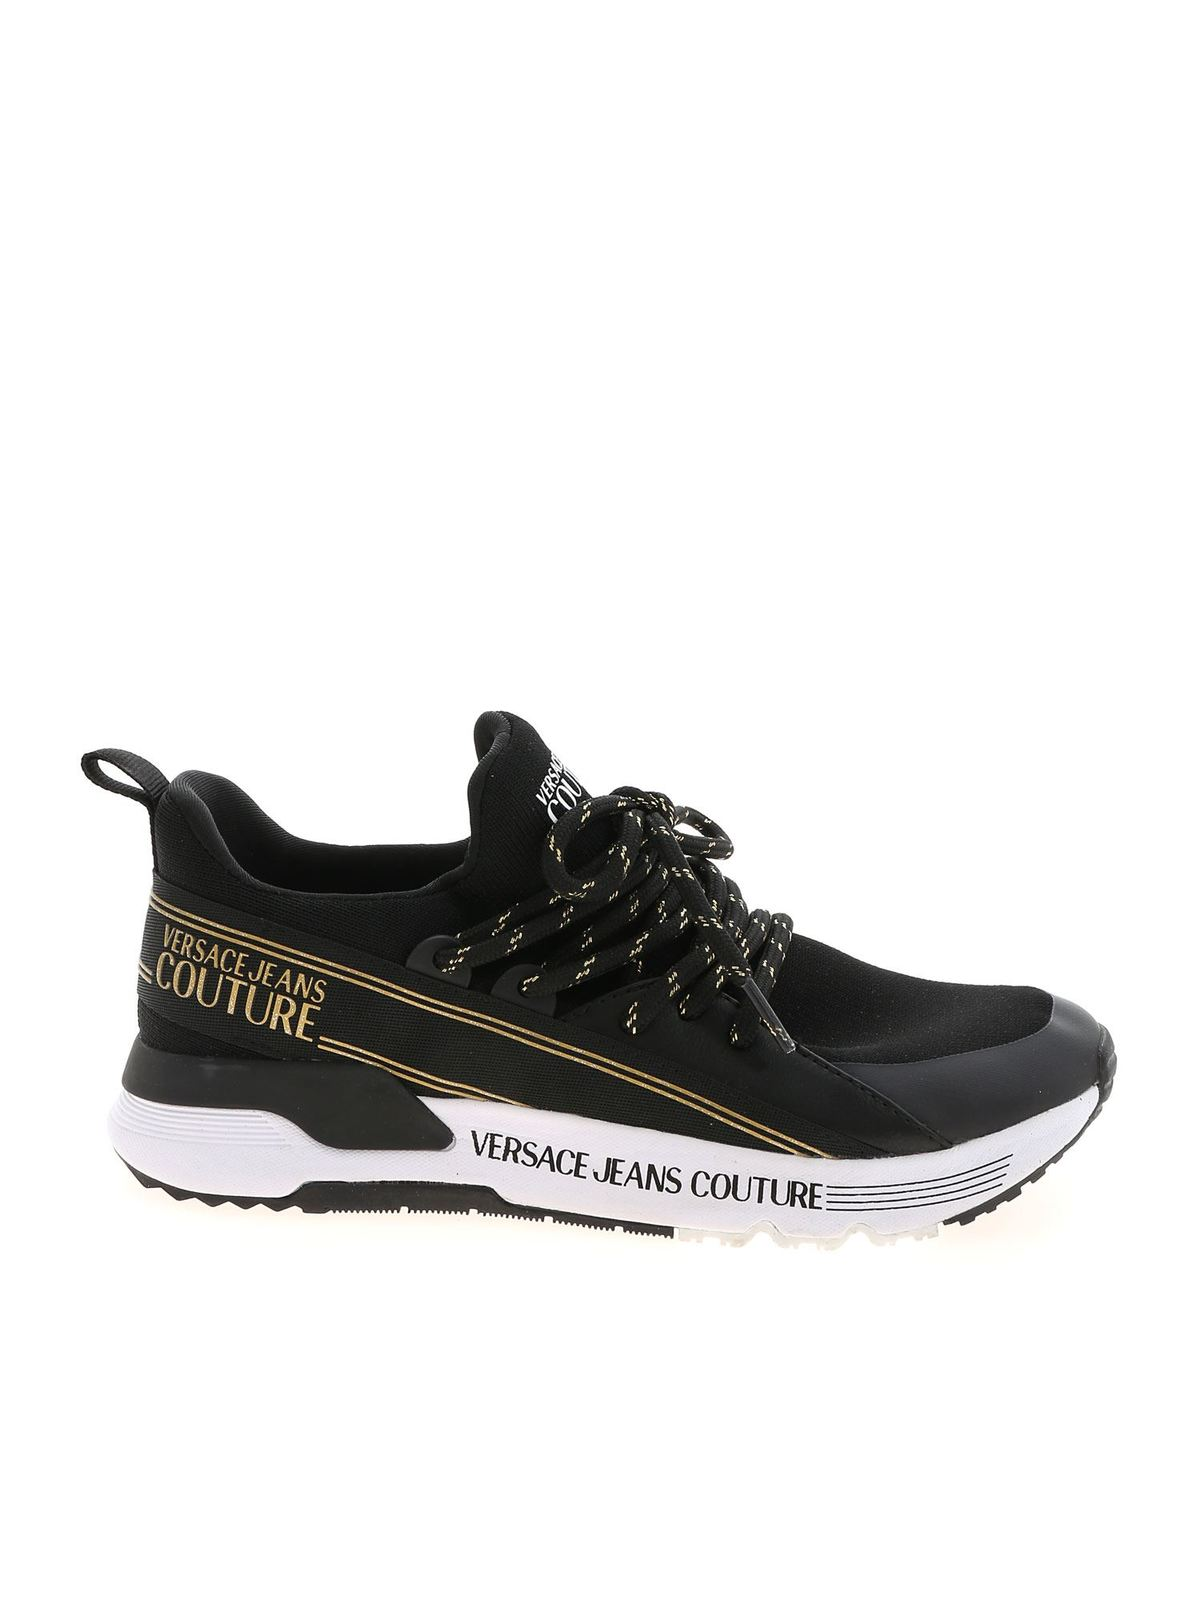 Versace Jeans Couture KNIT SNEAKERS IN BLACK AND GOLD COLOR